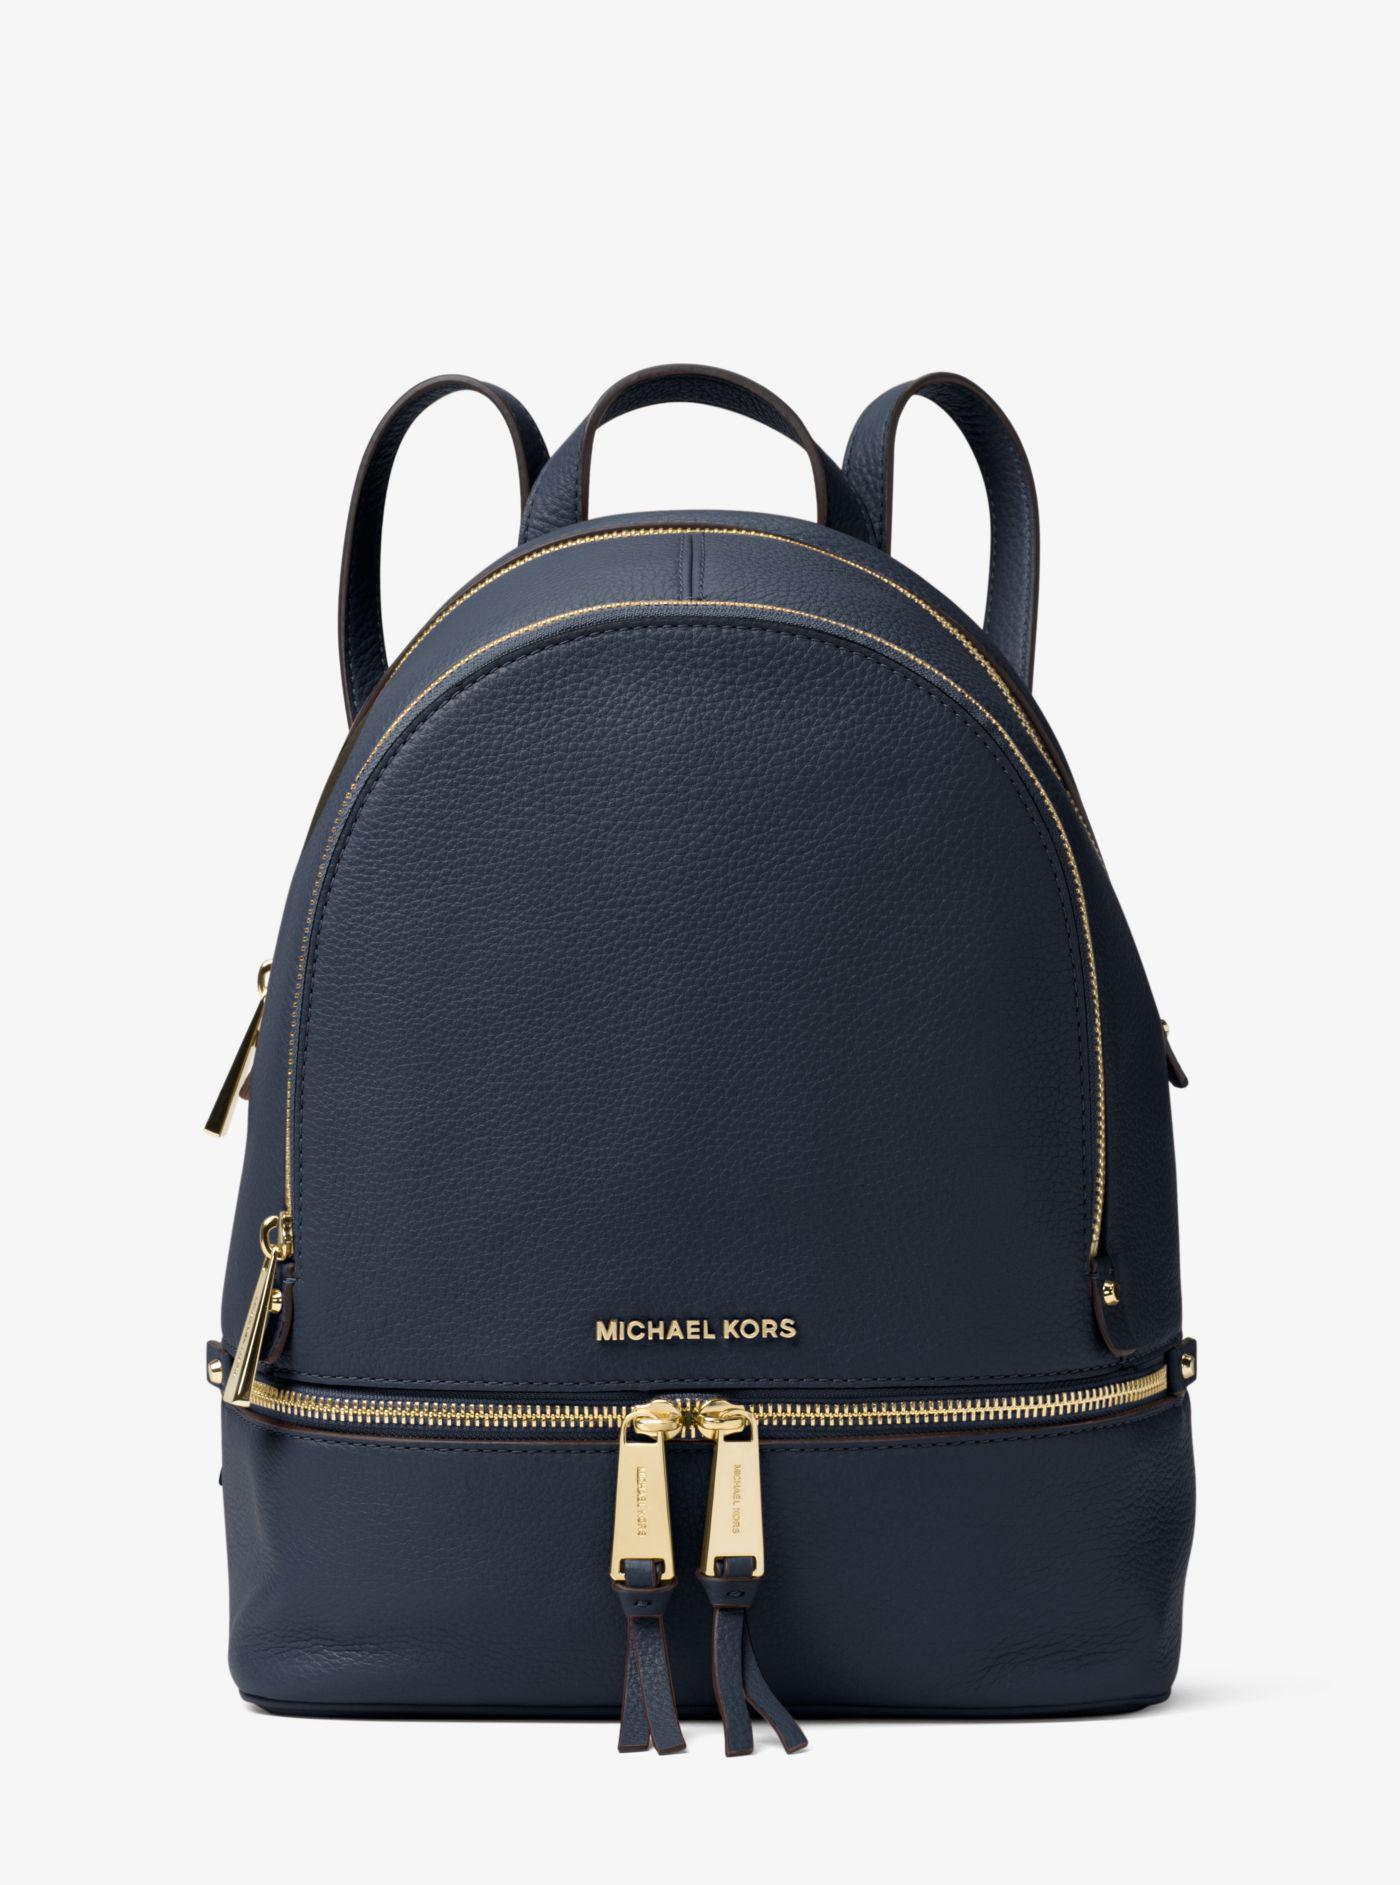 a6ba8f32a5ec1 Michael Kors - Blue Rhea Medium Leather Backpack - Lyst. View fullscreen